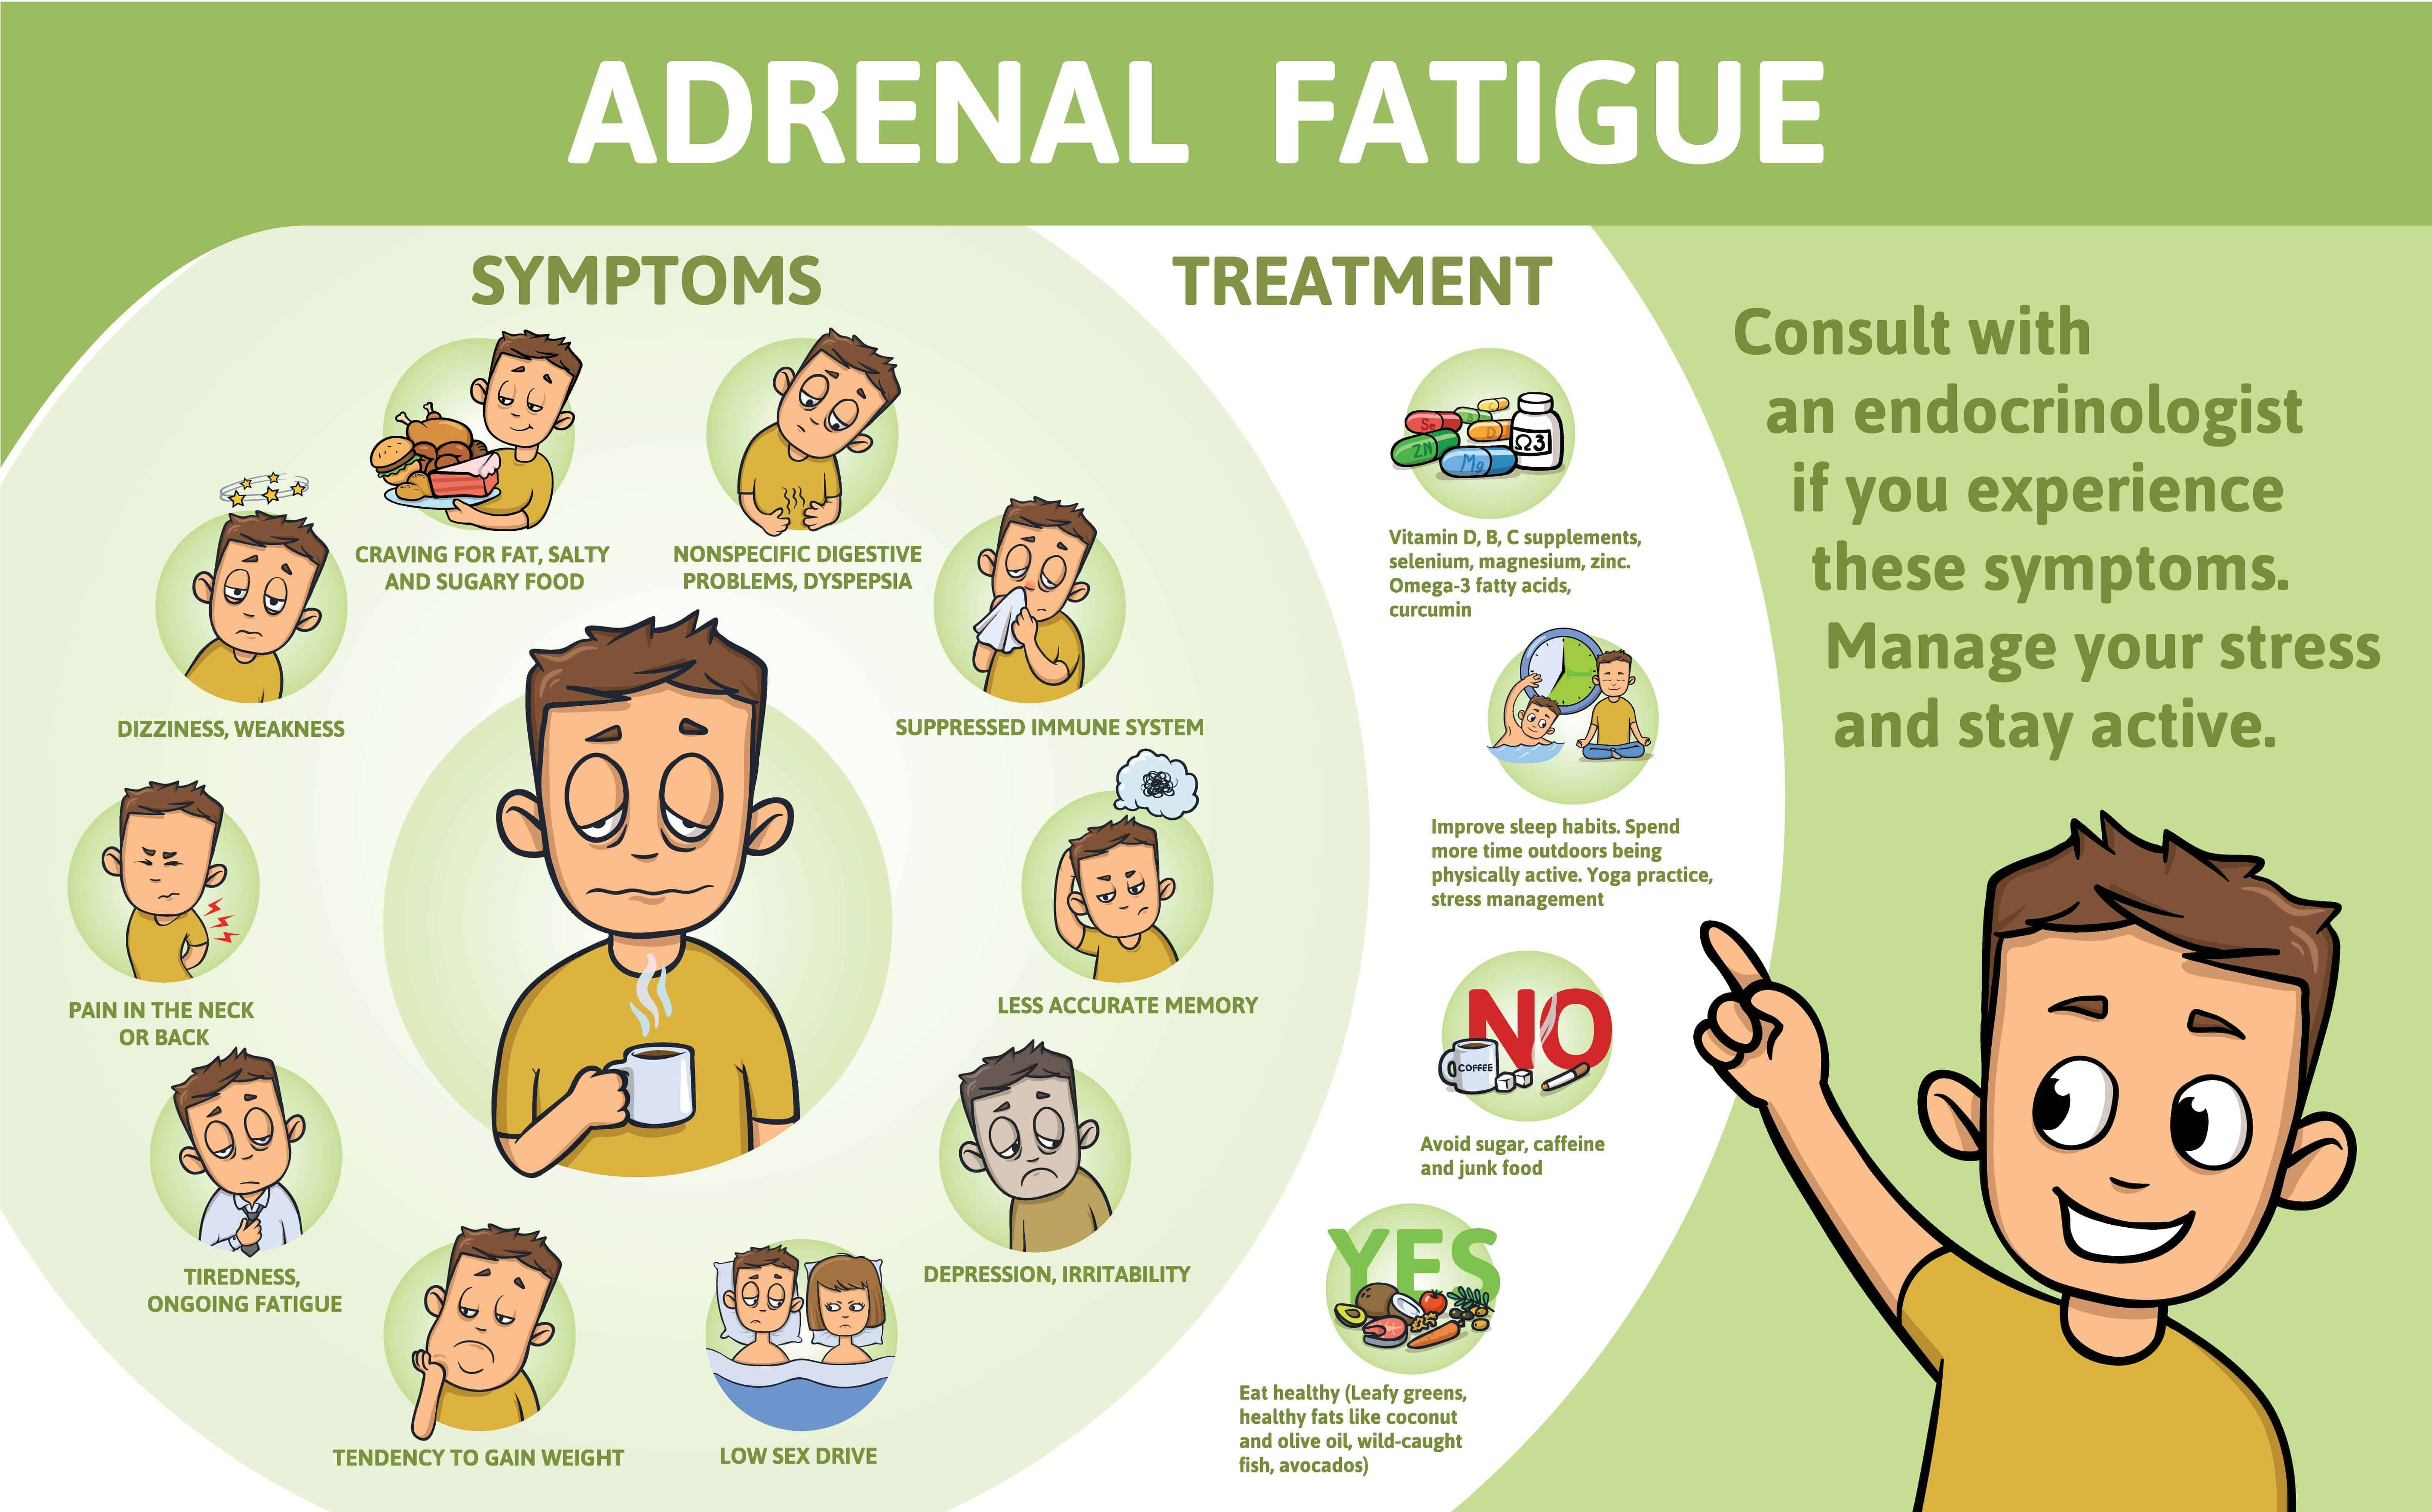 animated illustration of adrenal fatigue's symptoms and treatment